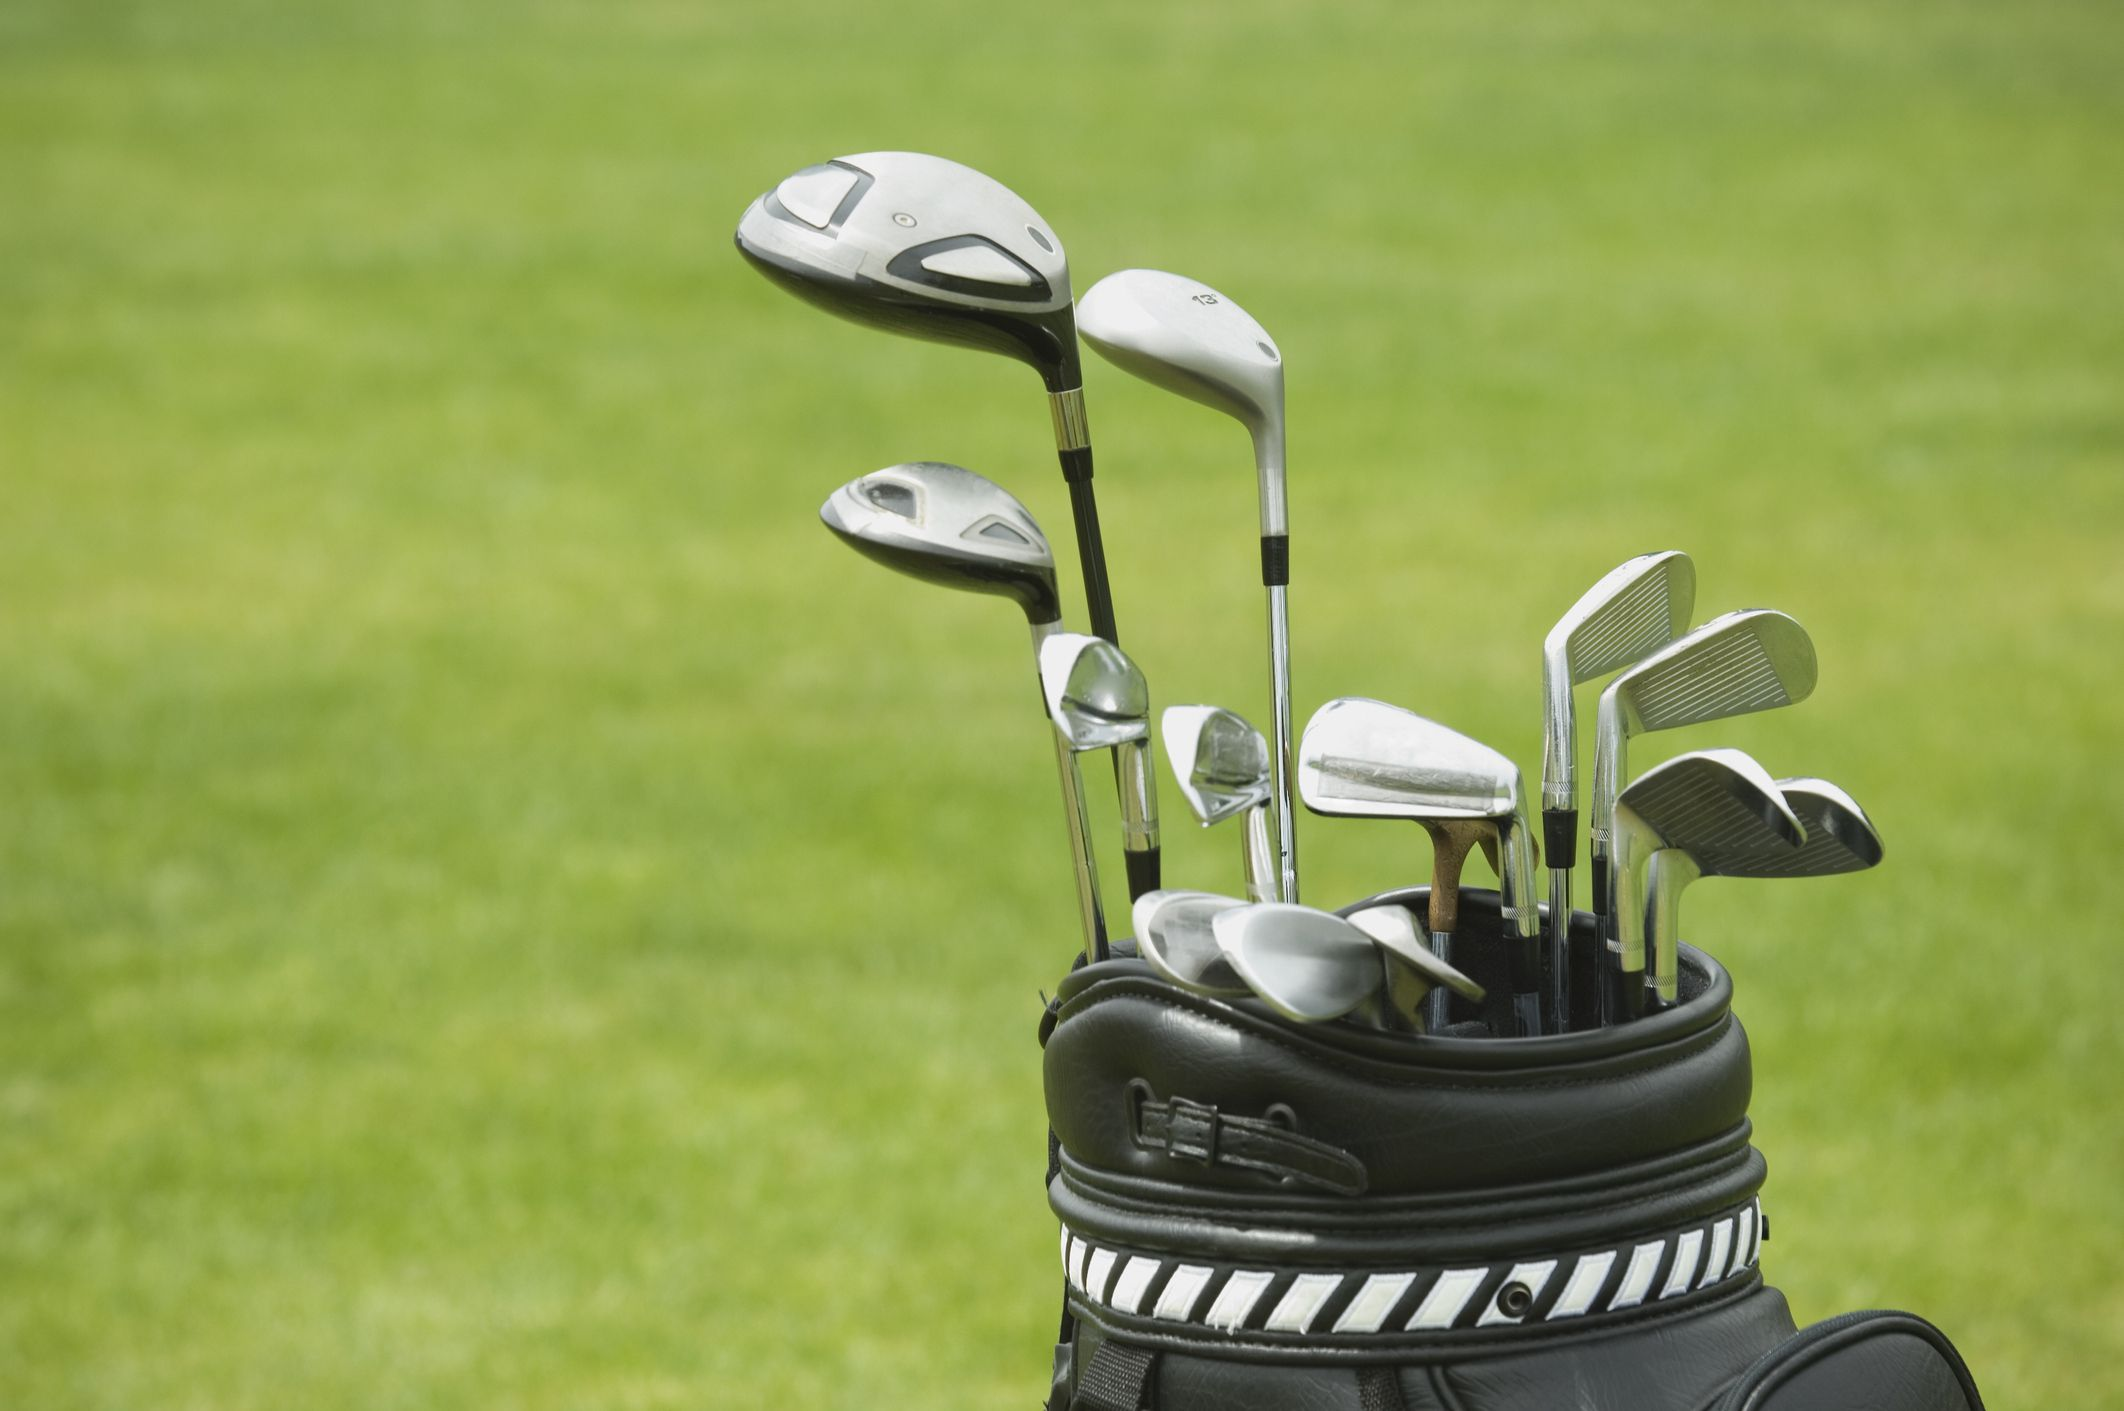 Finding a Good Place to Buy Golf Equipment